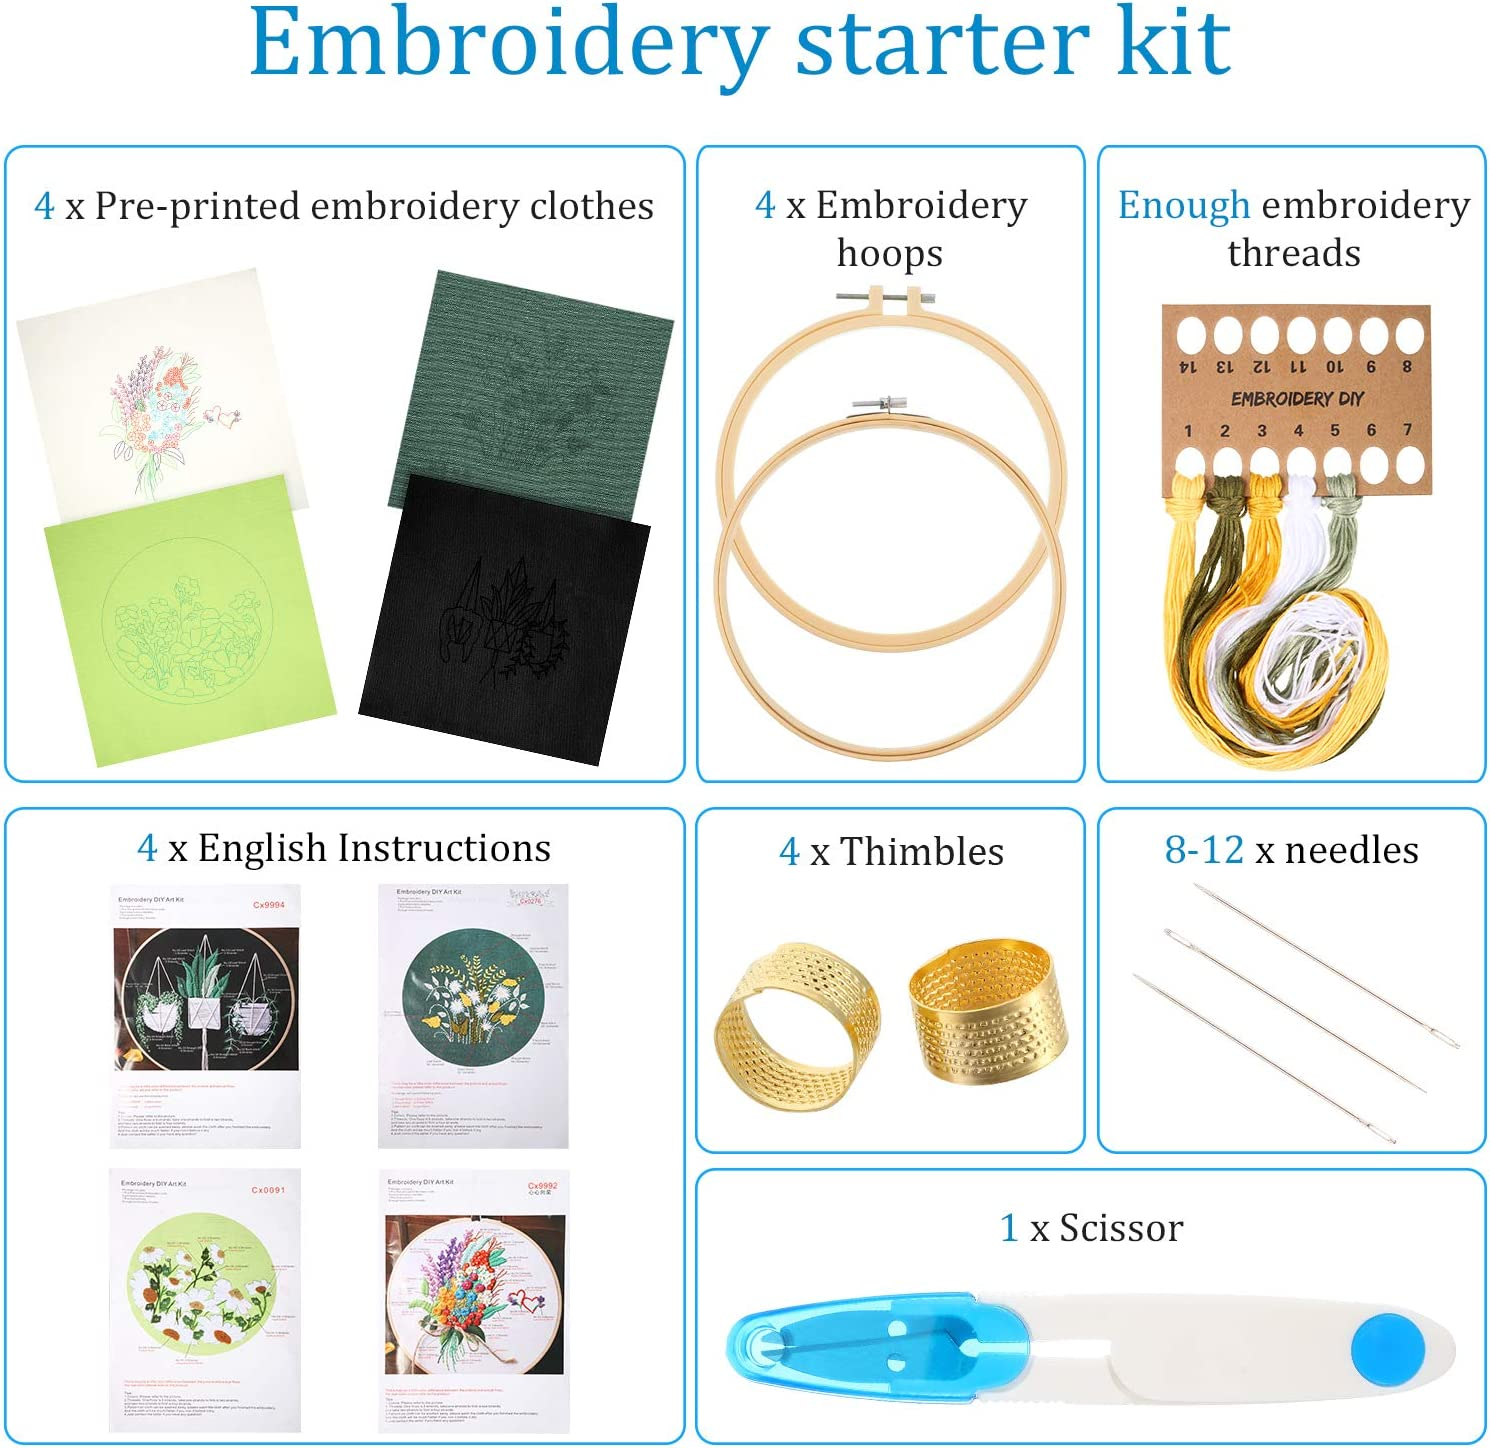 Plant Pattern Scissor Instruction for Beginners DIY Color Threads Thimbles WILLBOND 4 Sets Embroidery Starter Kit Full Range of Floral Embroidery Tool Kit Includes Hoops Cloths Needles